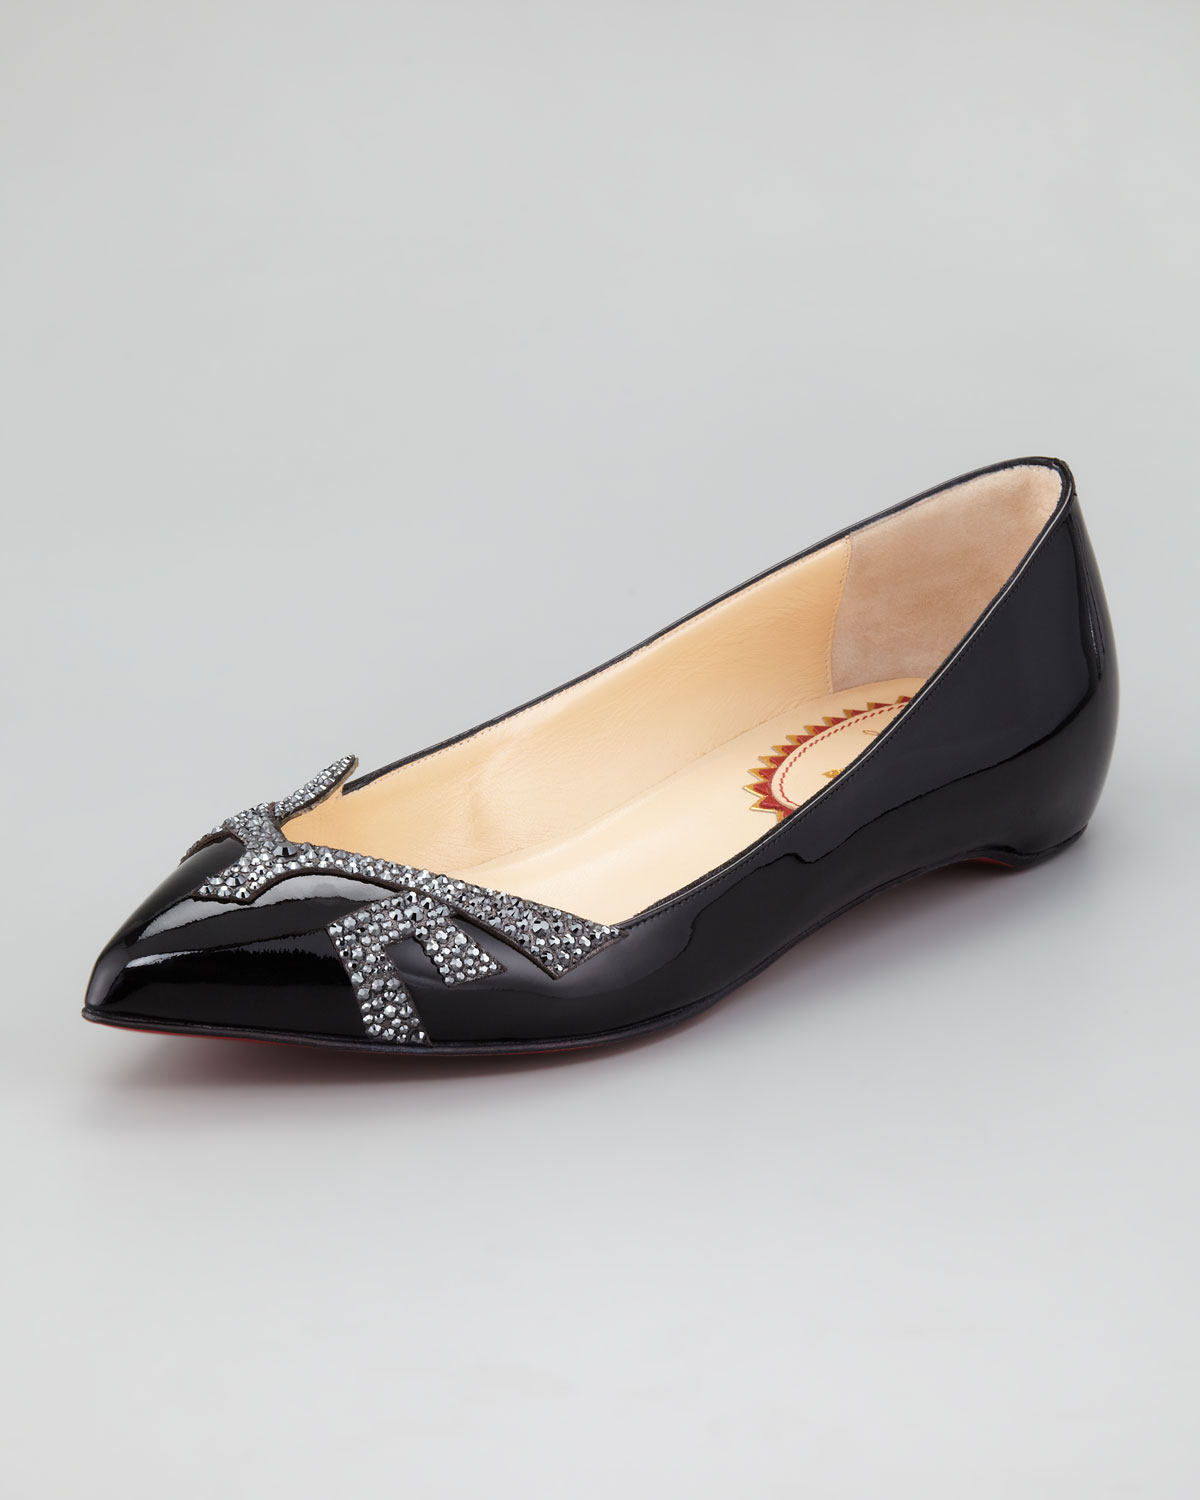 Christian Louboutin Pigalove Patent Leather Crystalcoated